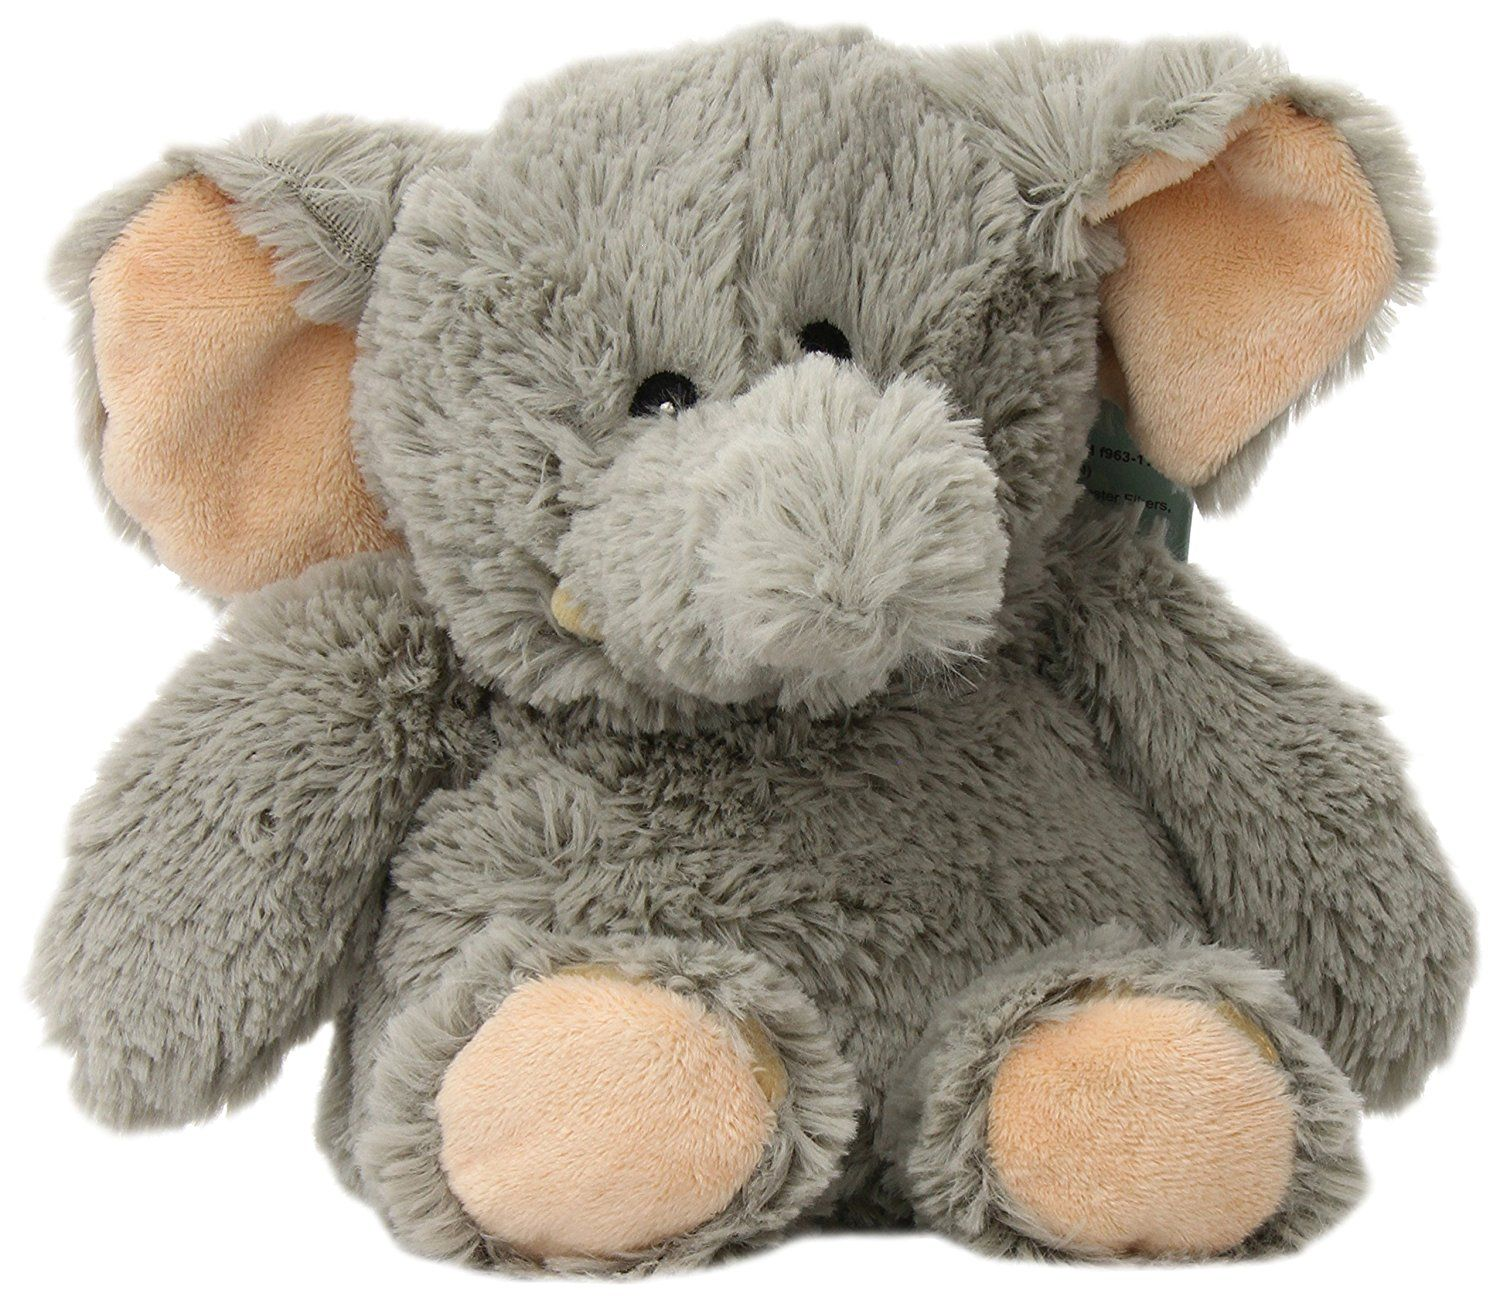 Intelex Cozy Plush Elephant Microwaveable